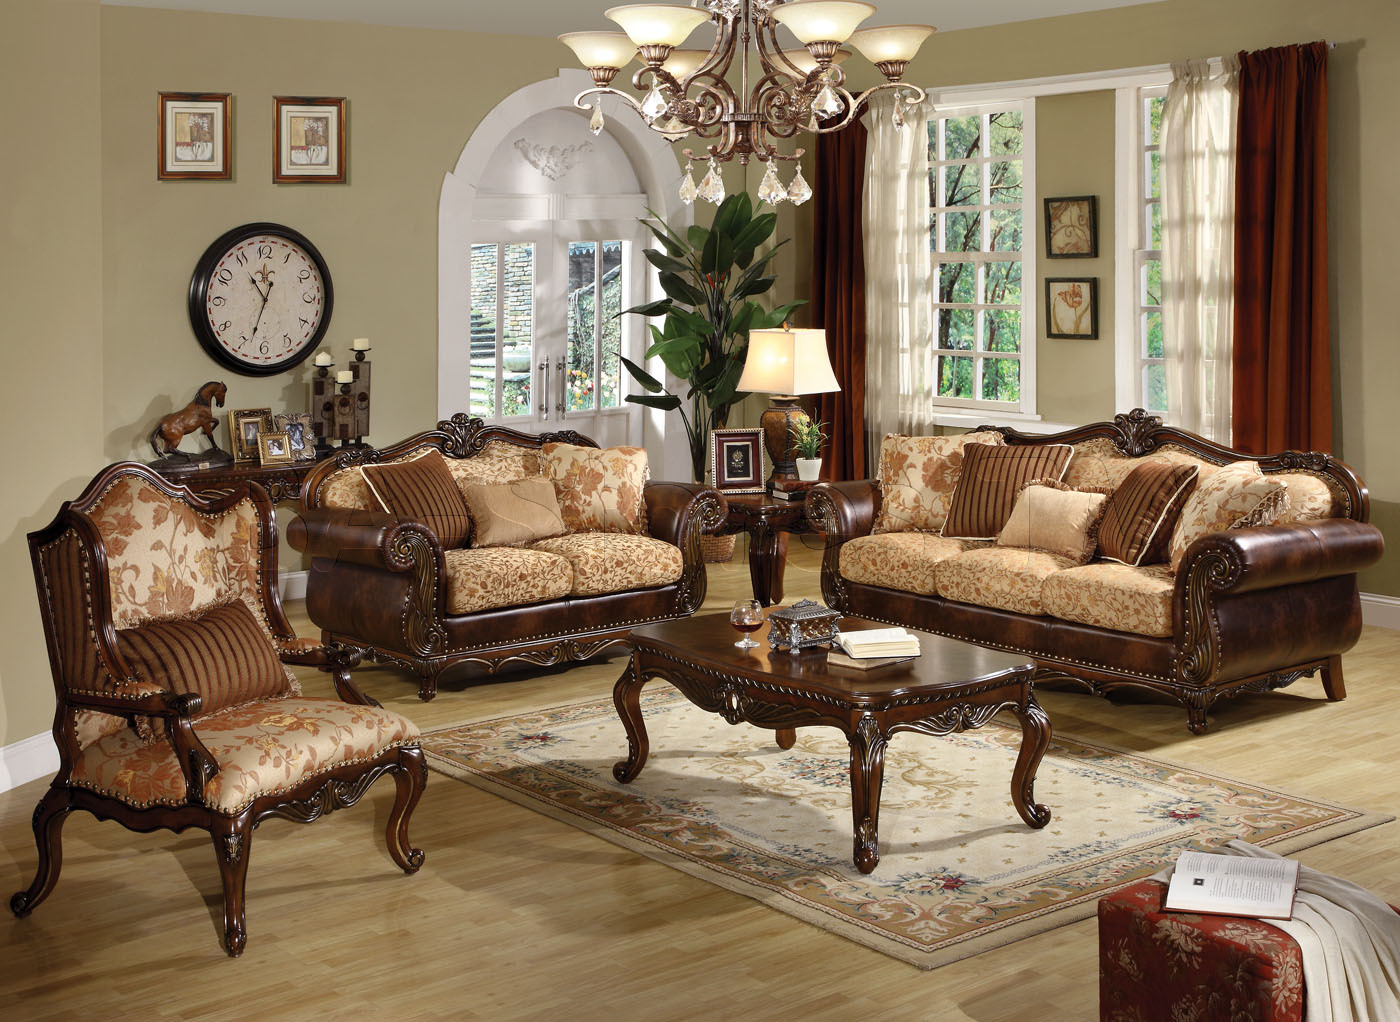 Living Room Classic Living Room Design traditional living room decorating ideas pictures classical dfs t jpg furniture room